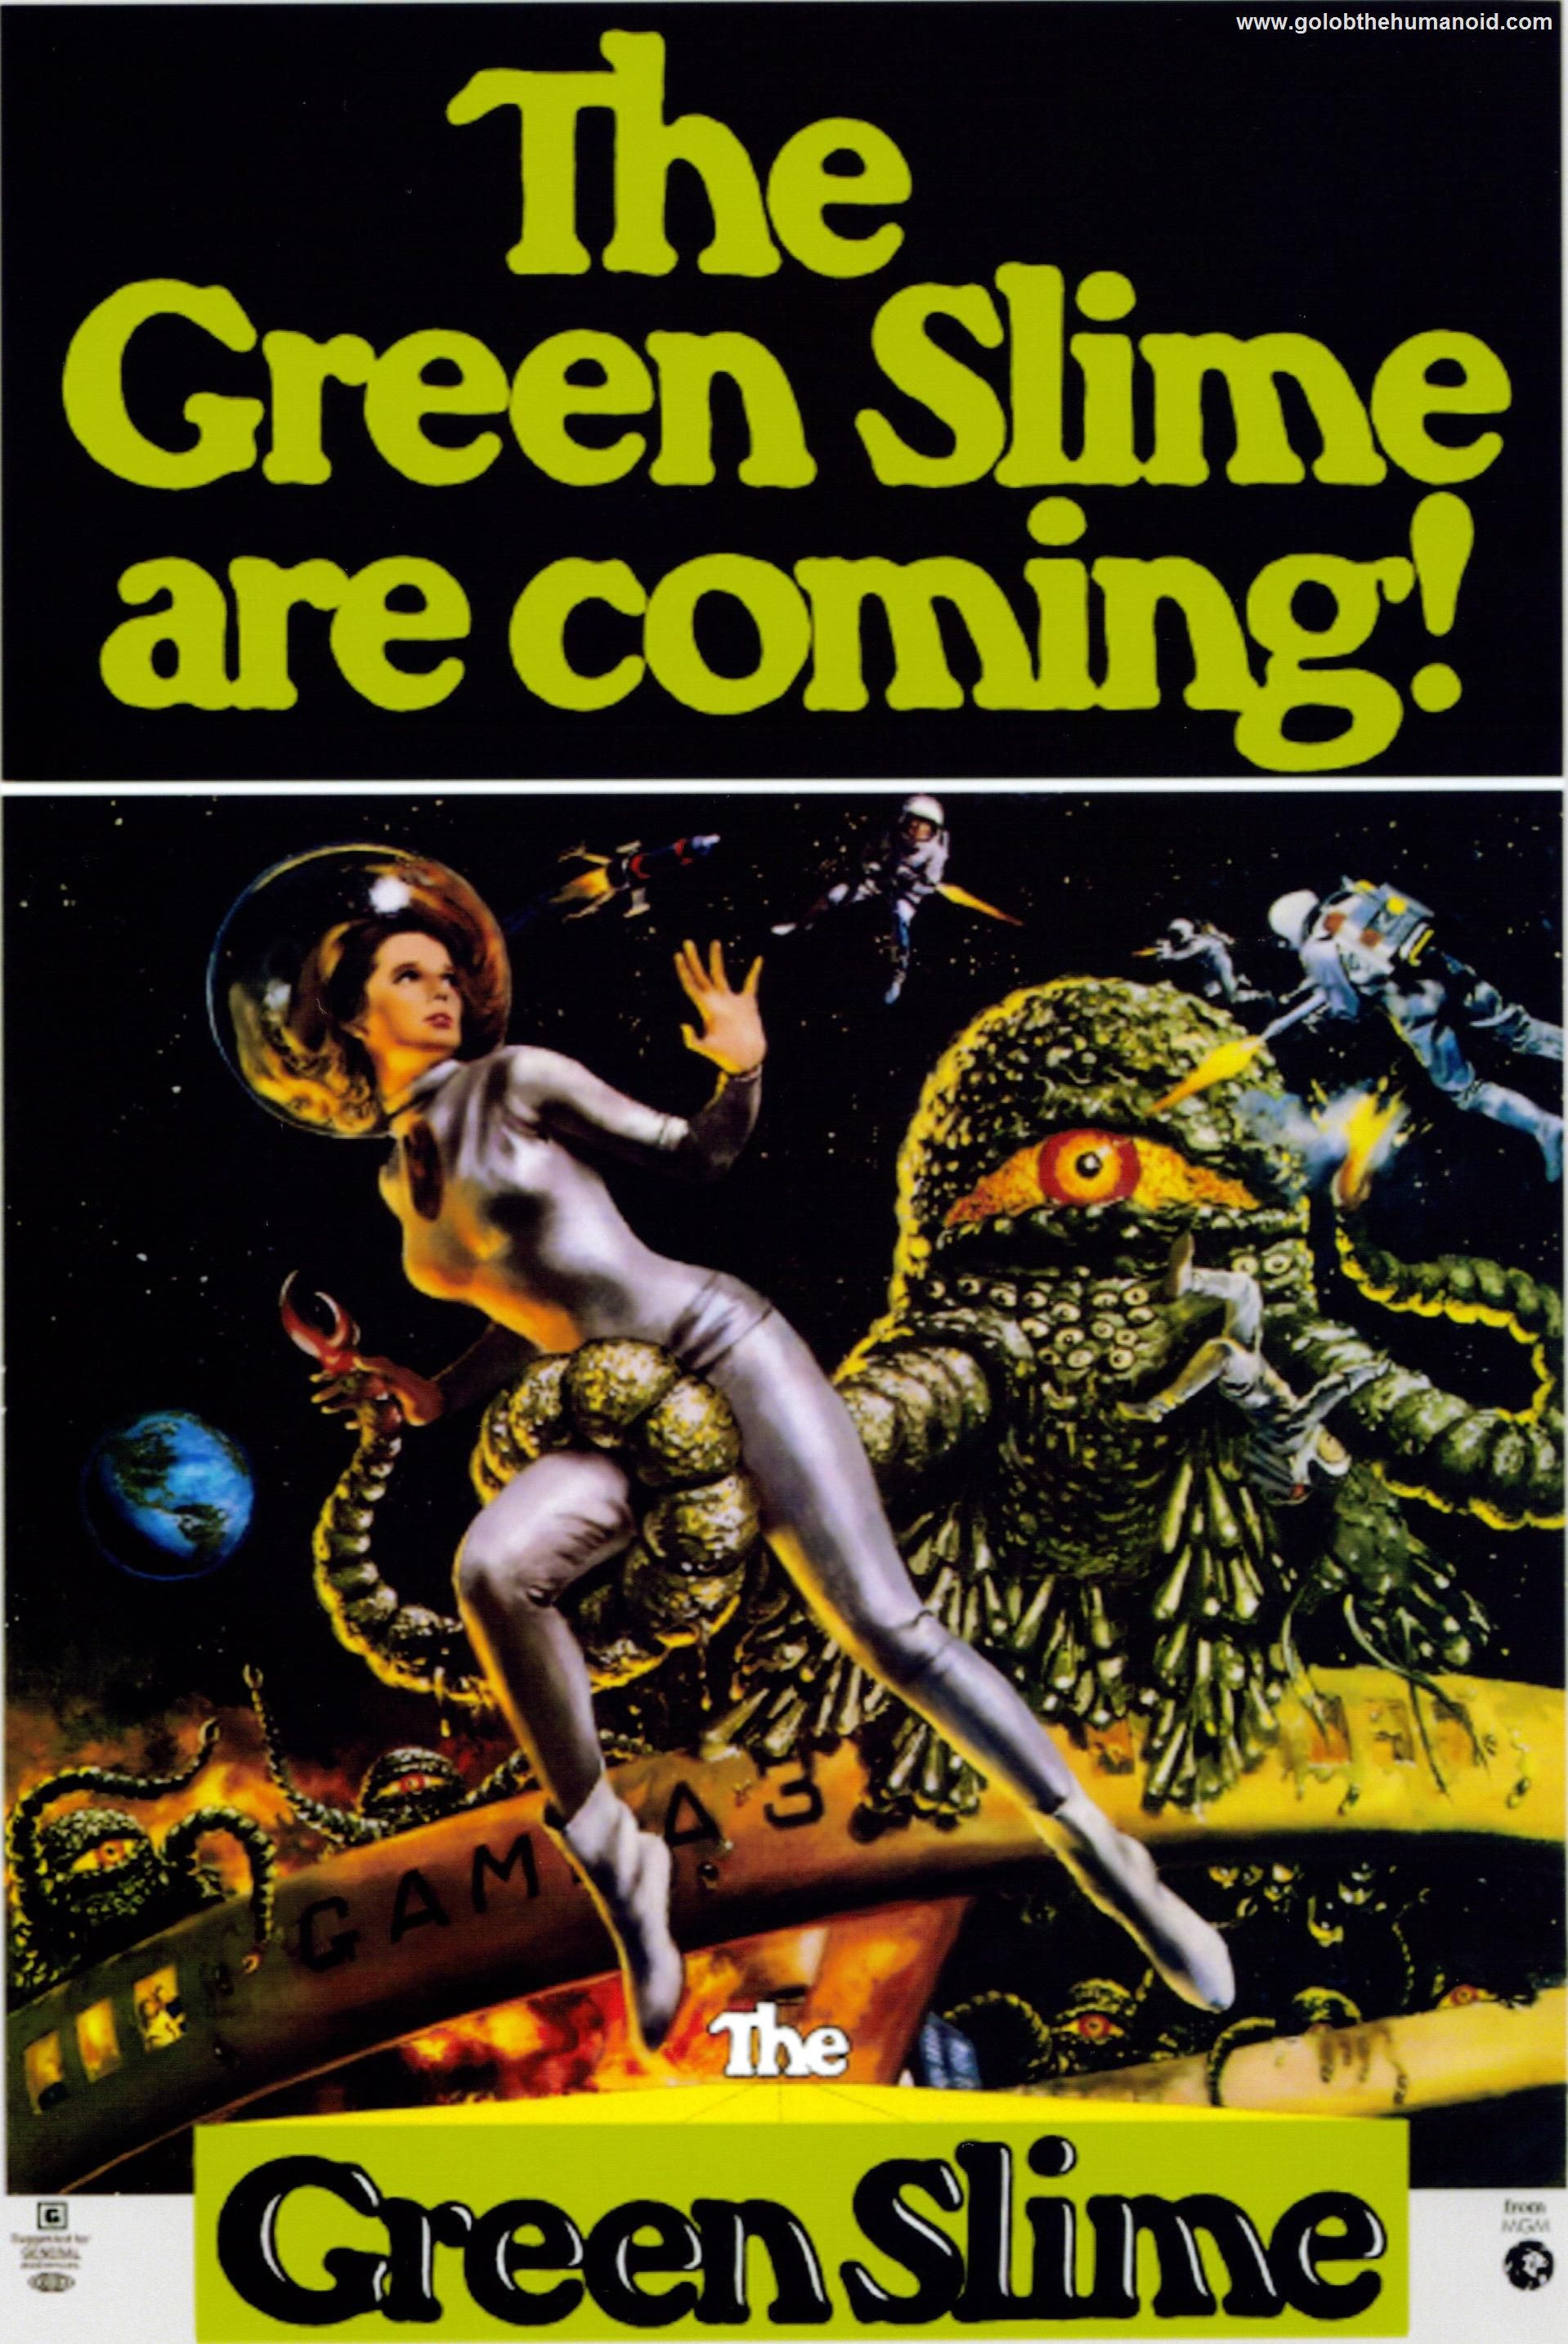 The Green Slime Google Search Science fiction movie